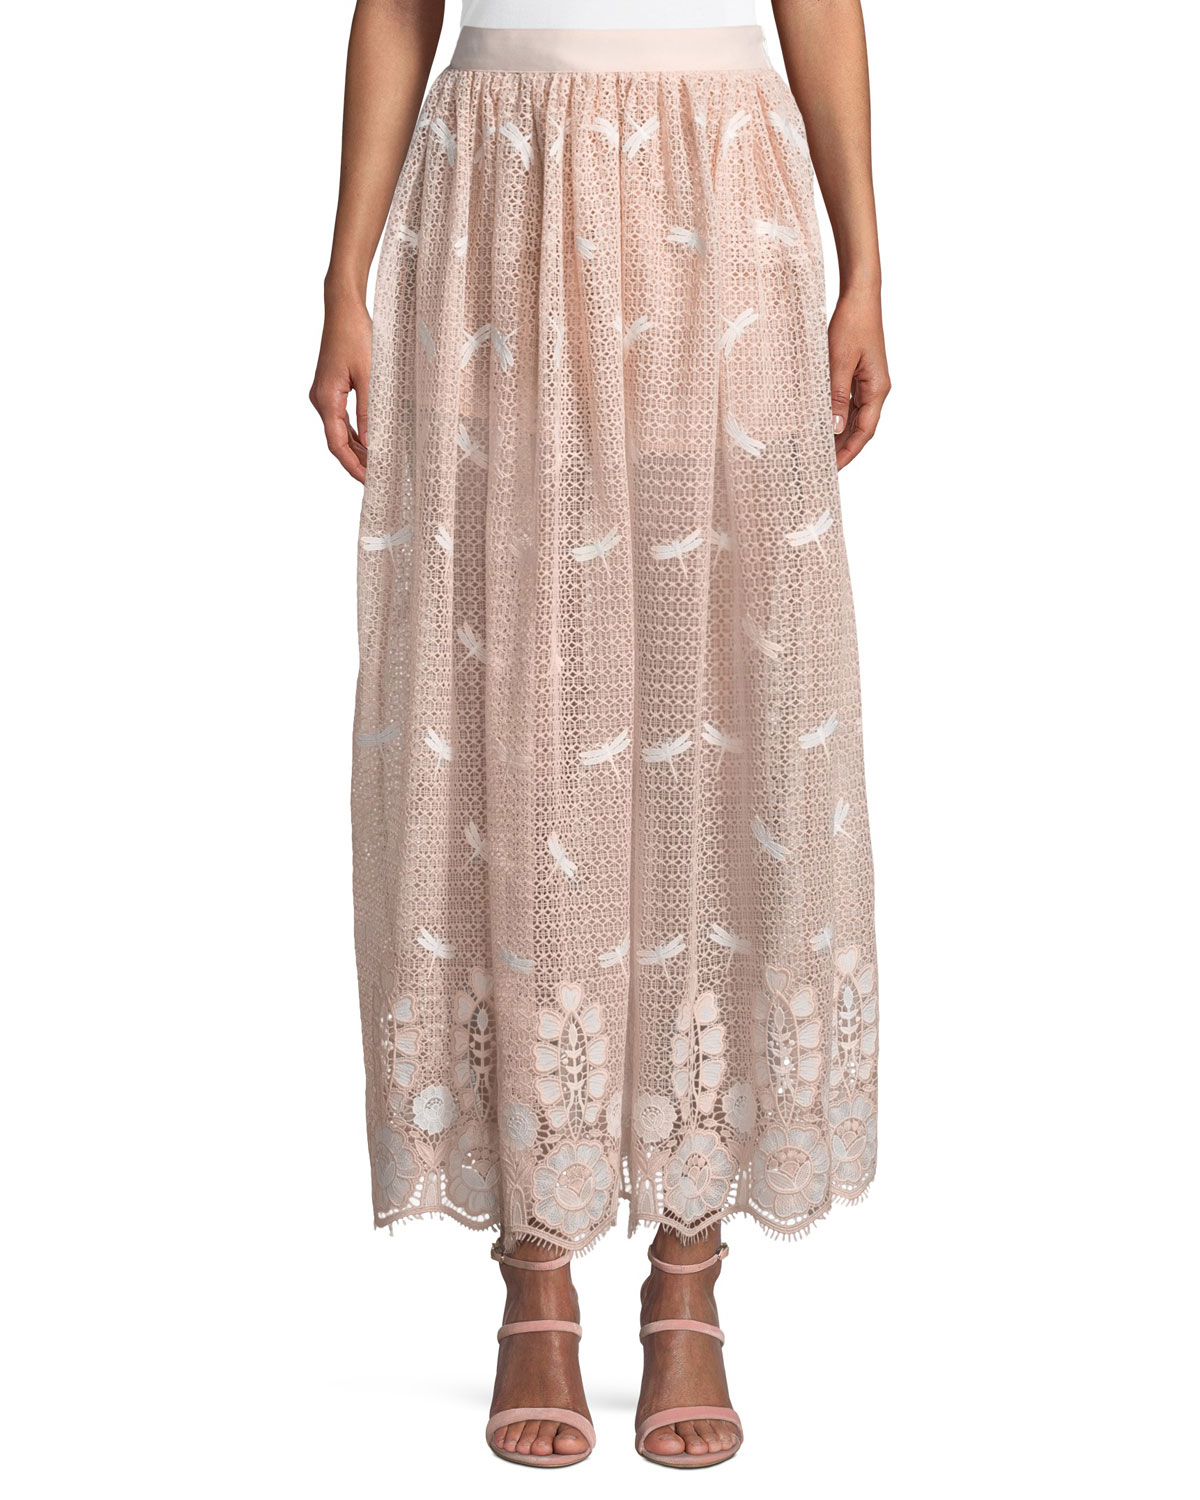 Paris Dragonfly Scallop Lace A-Line Skirt